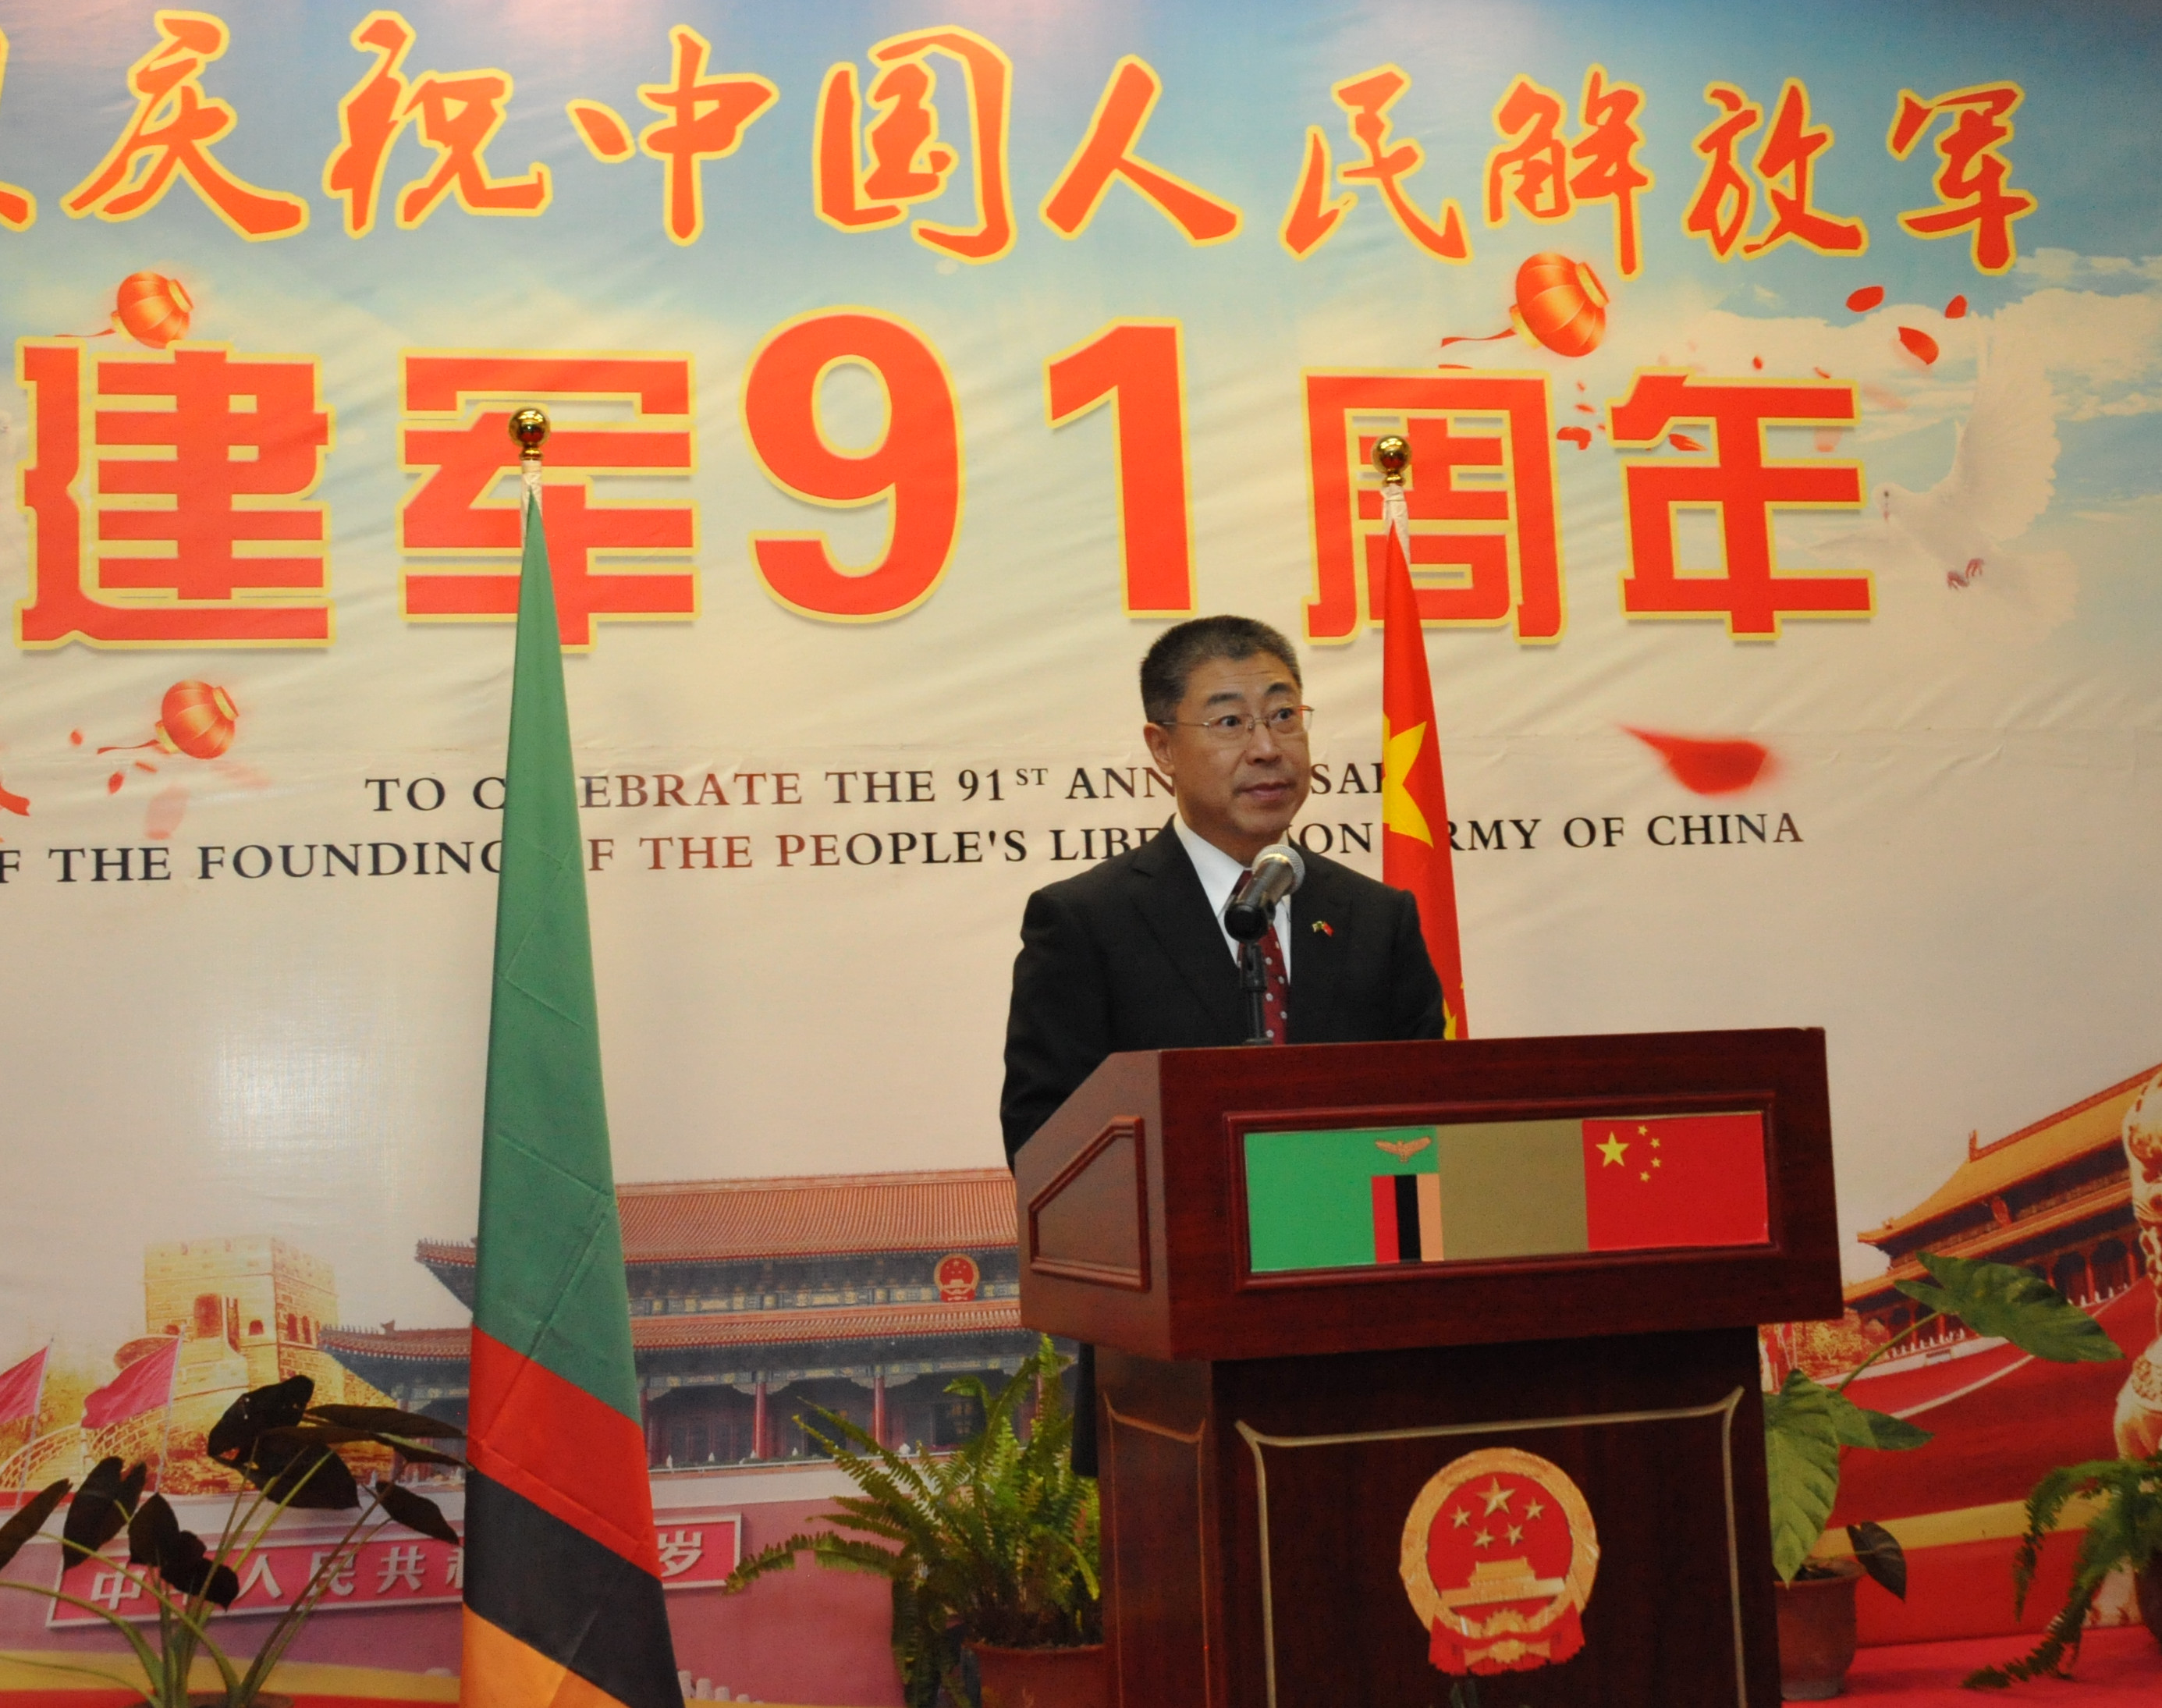 Chinese Embassy in Zambia Hold Reception to Celebrate the 91st.